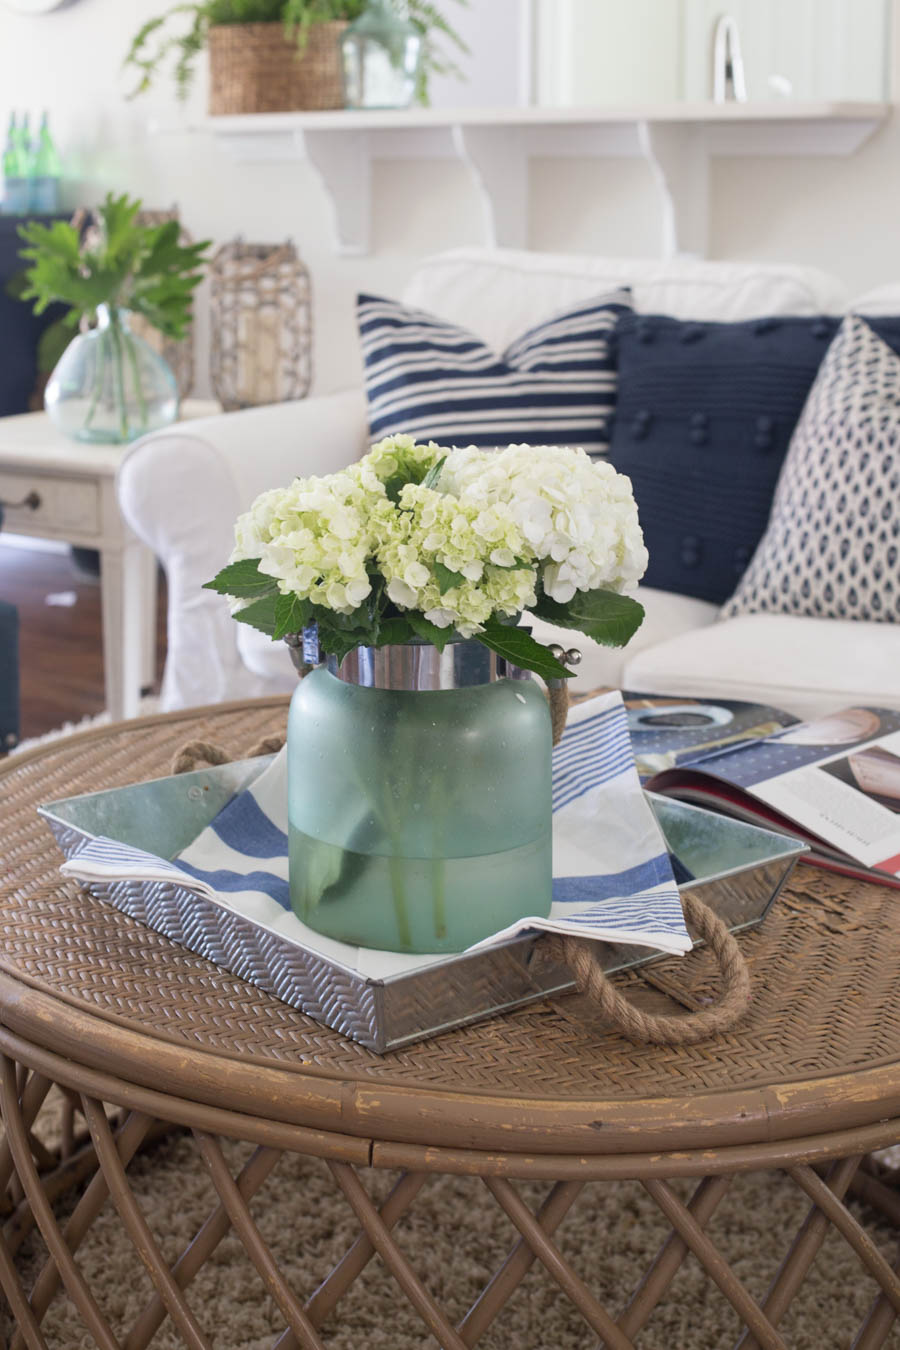 Pinterest Summer Decorating Ideas